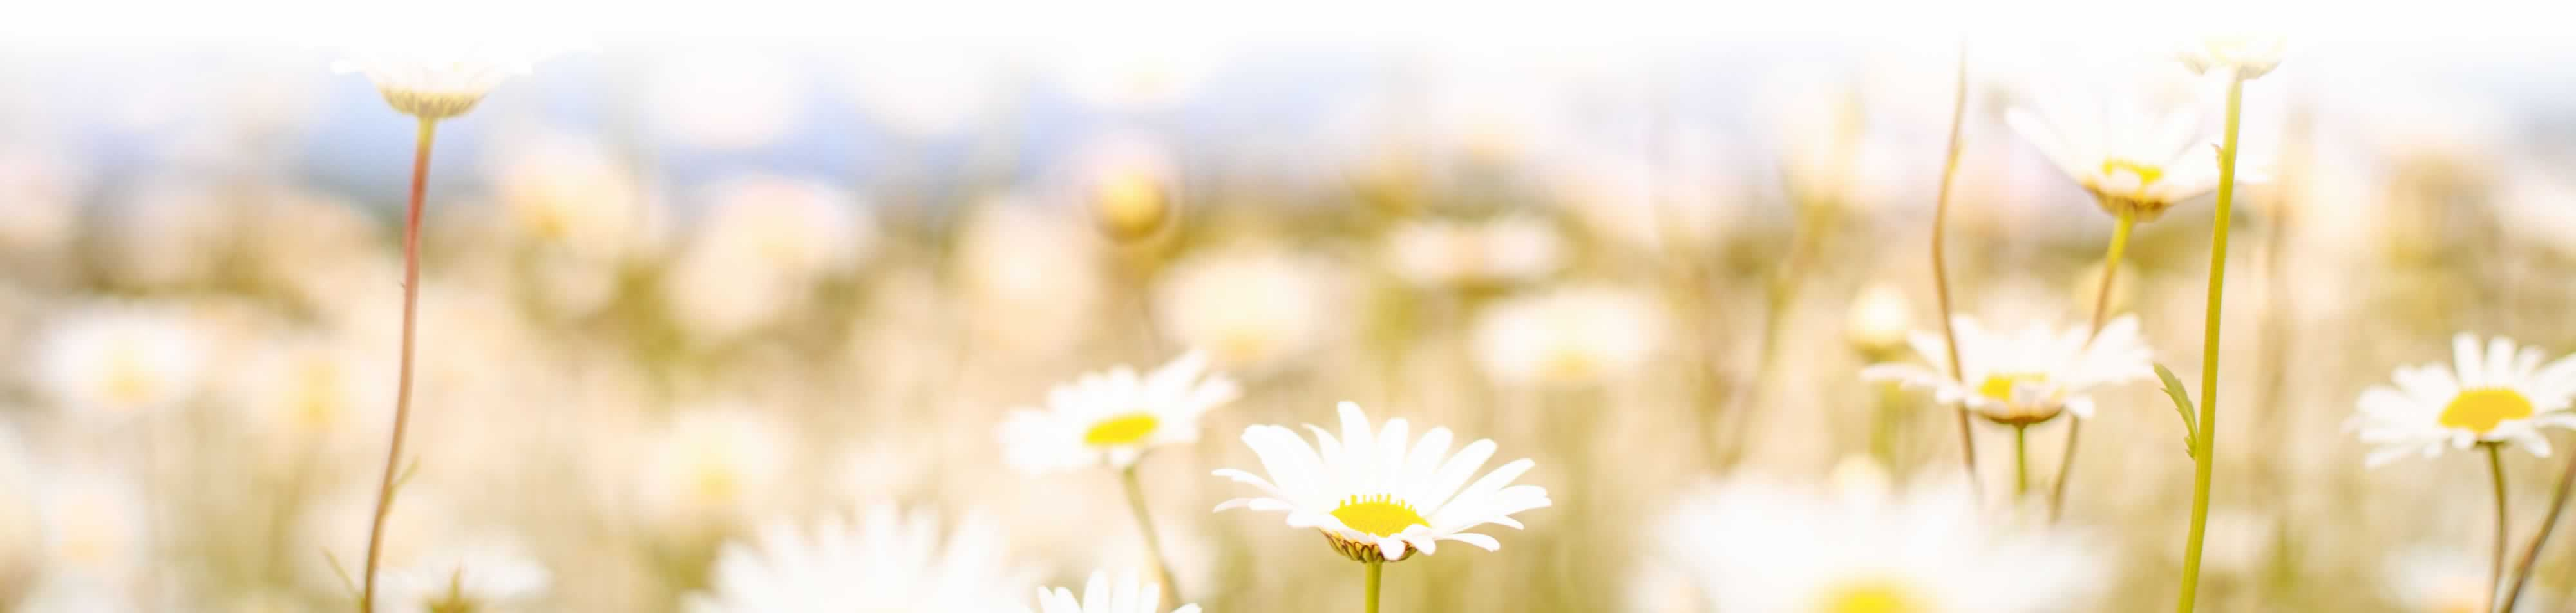 Photo of a field of camomile flowers.